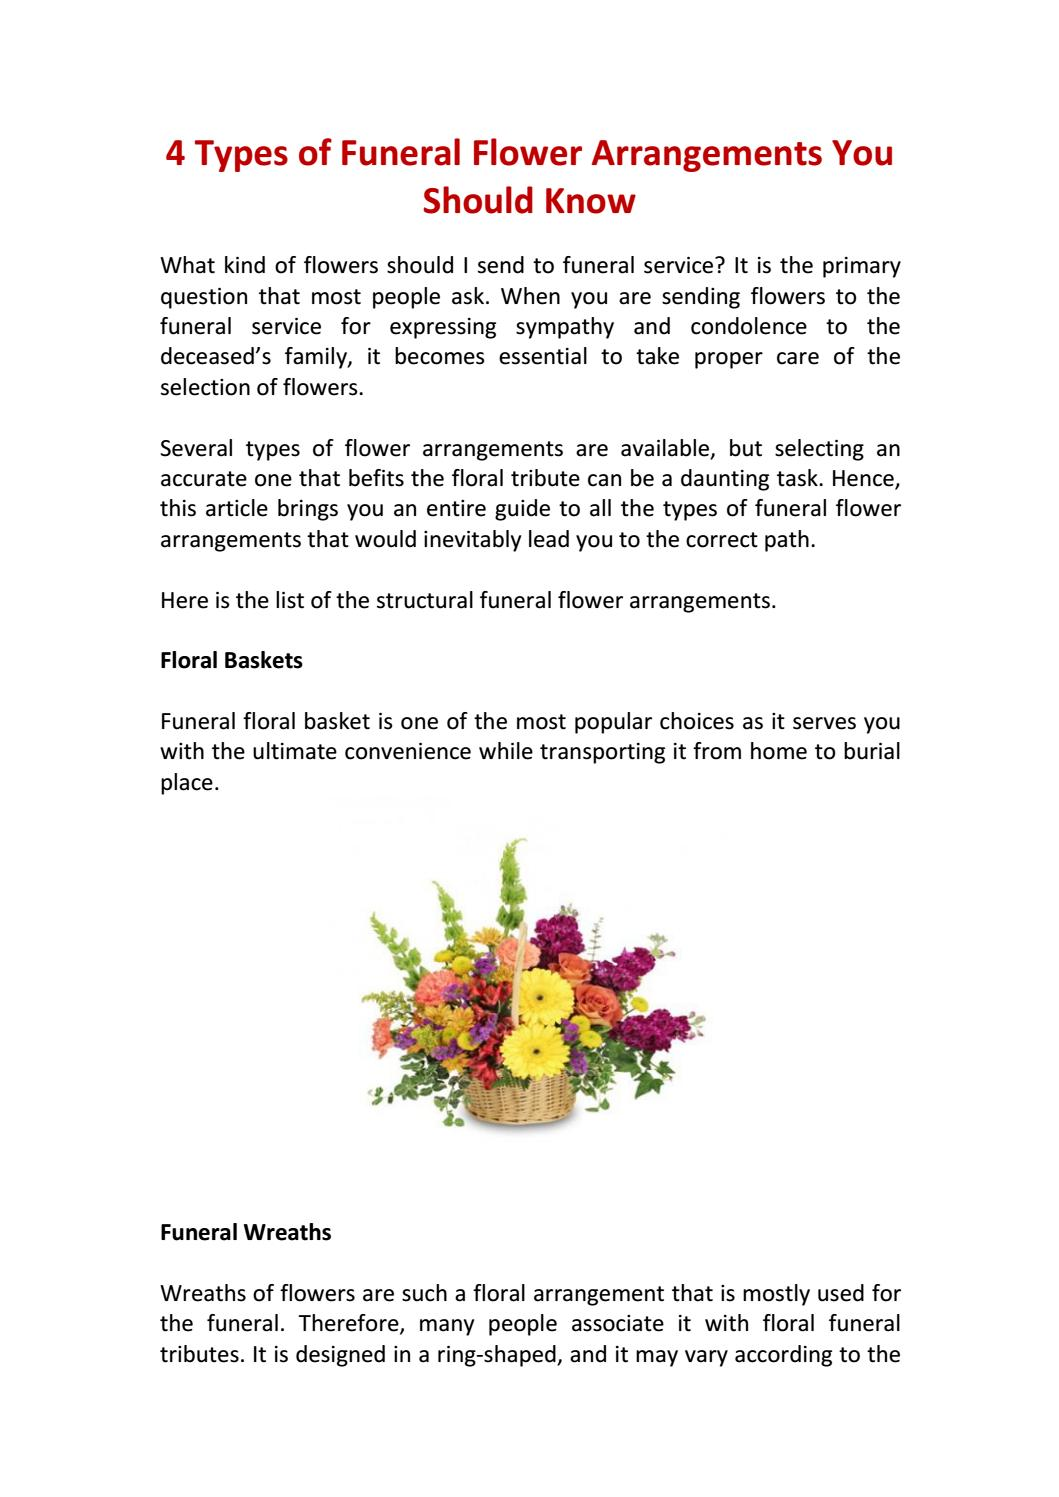 4 types of funeral flower arrangements you should know by 4 types of funeral flower arrangements you should know by flowersandsympathy issuu izmirmasajfo